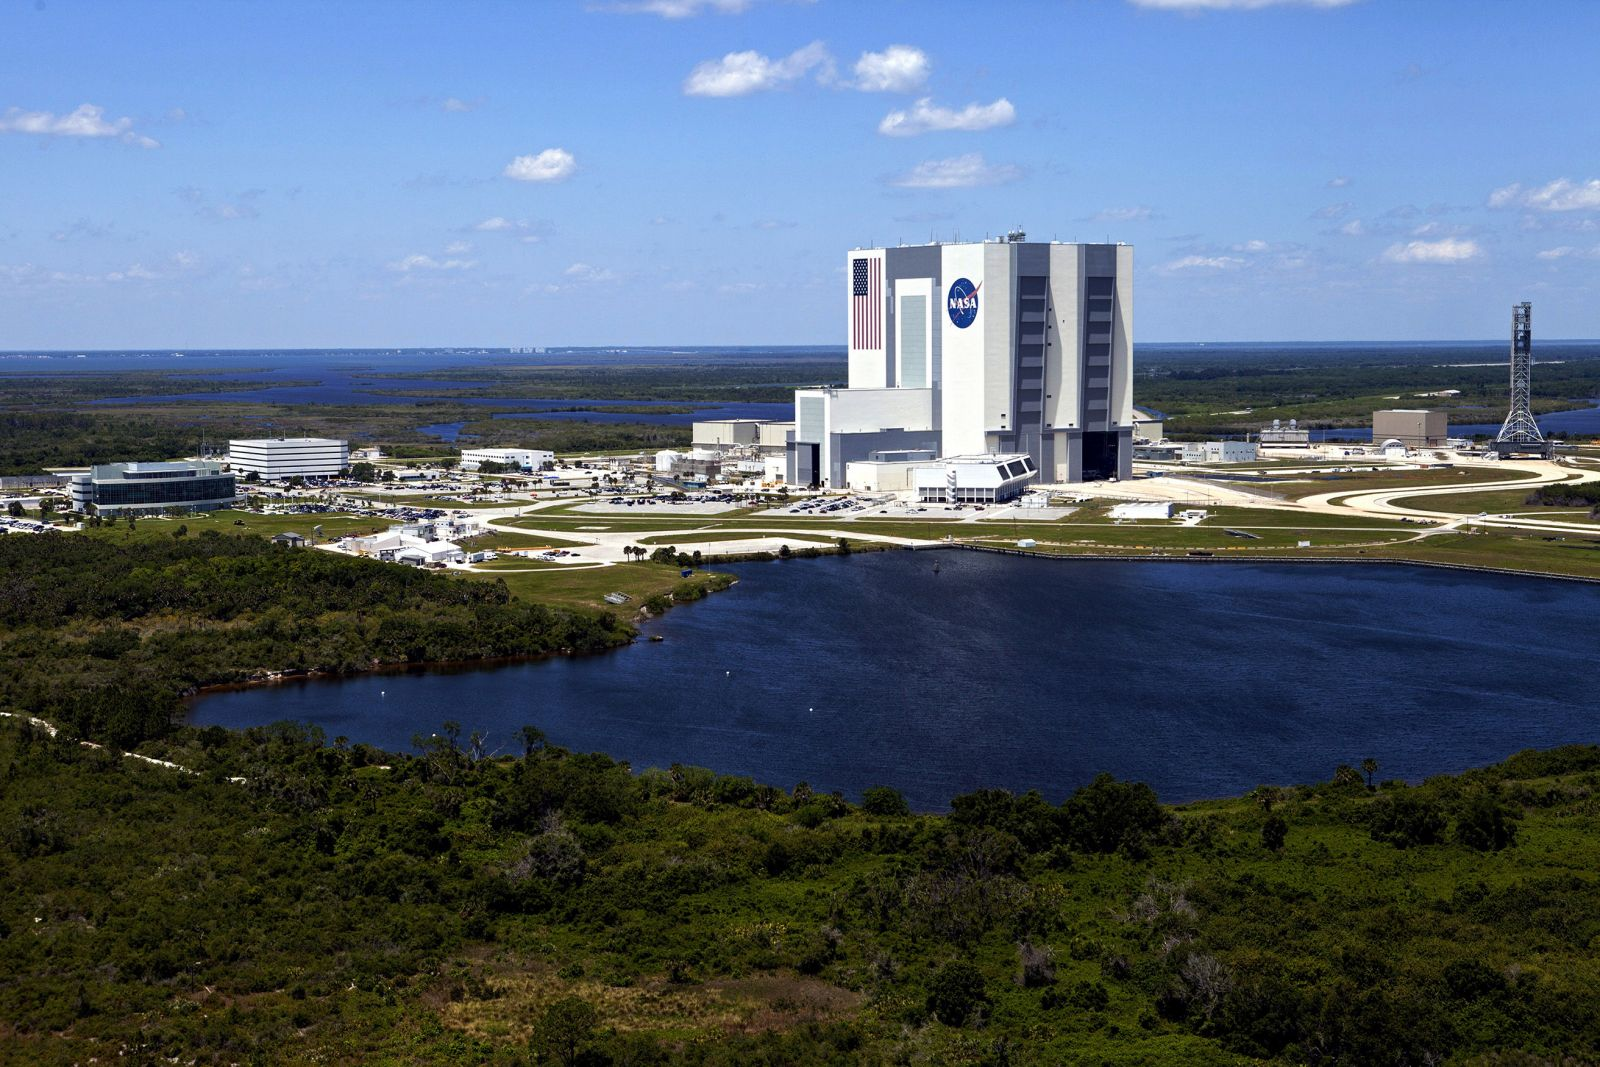 Kennedy Space Center's Vehicles Assembly Building. Photo Credit: NASA